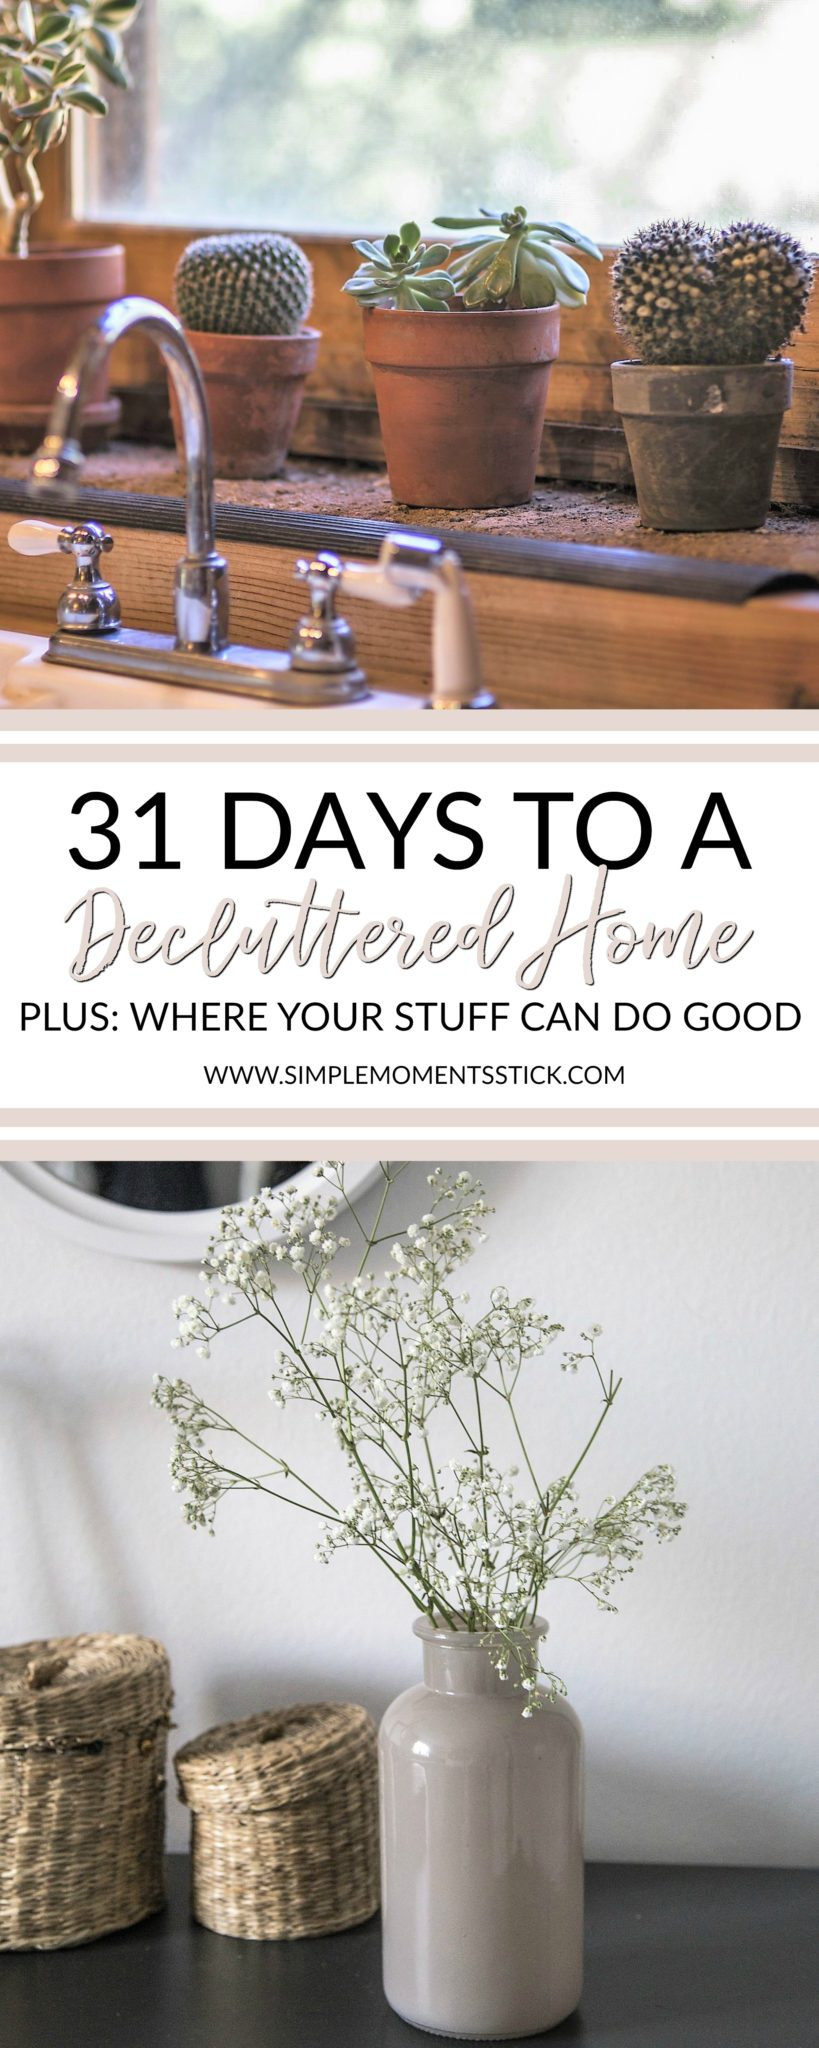 Many of us are looking for decluttering tips for spring. Join in on this 31 day challenge and get your home more decluttered than it's ever been!